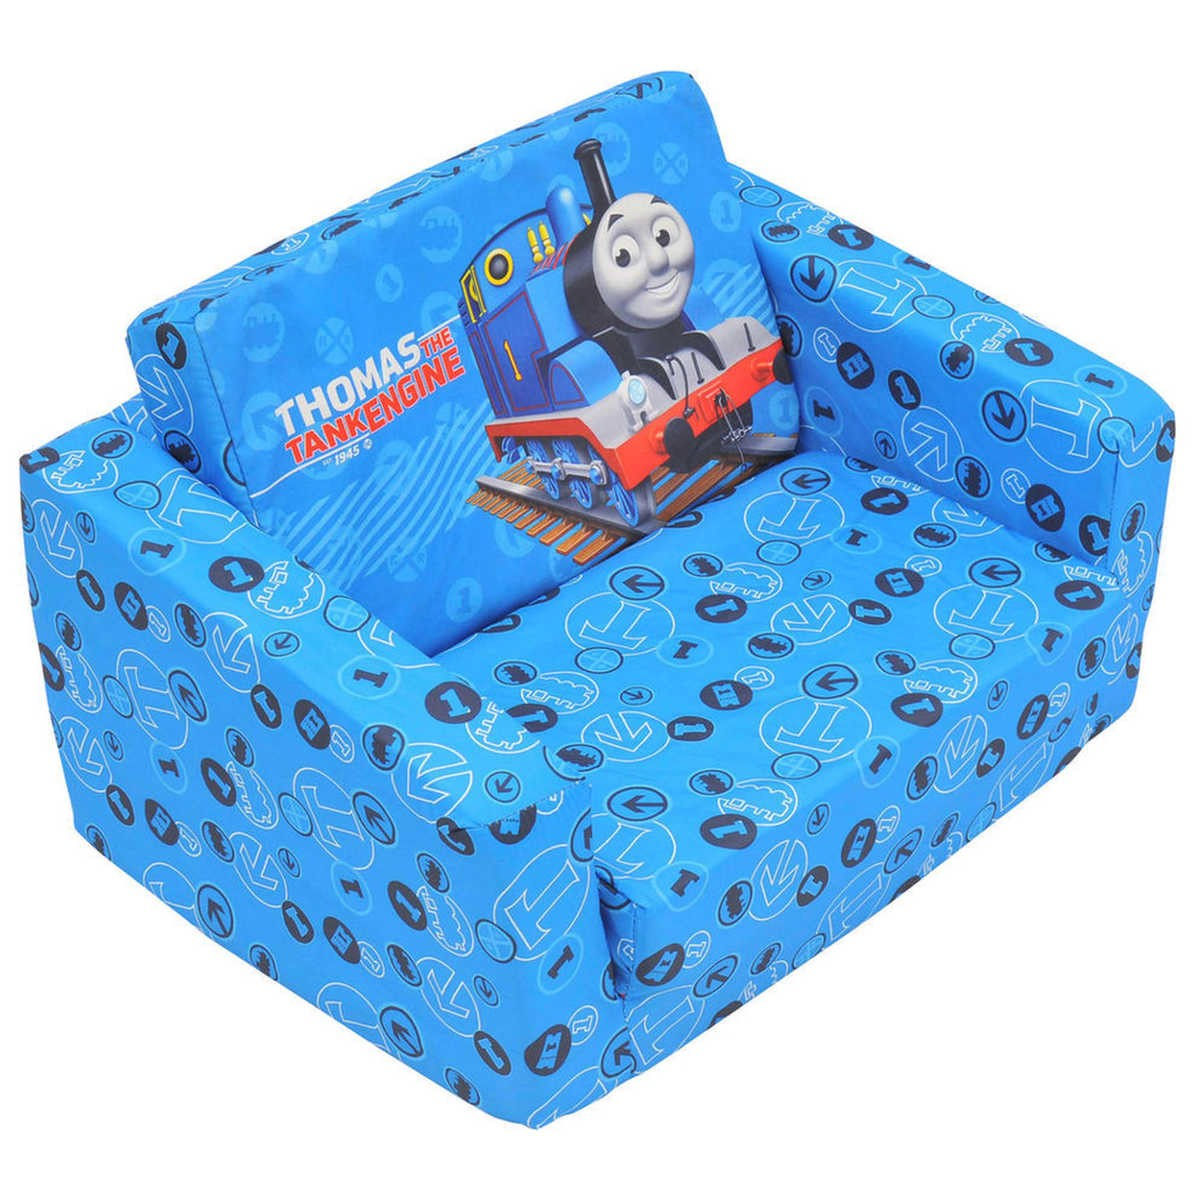 Toddler Couch Chair Thomas Friends Kids Flip Out Sofa